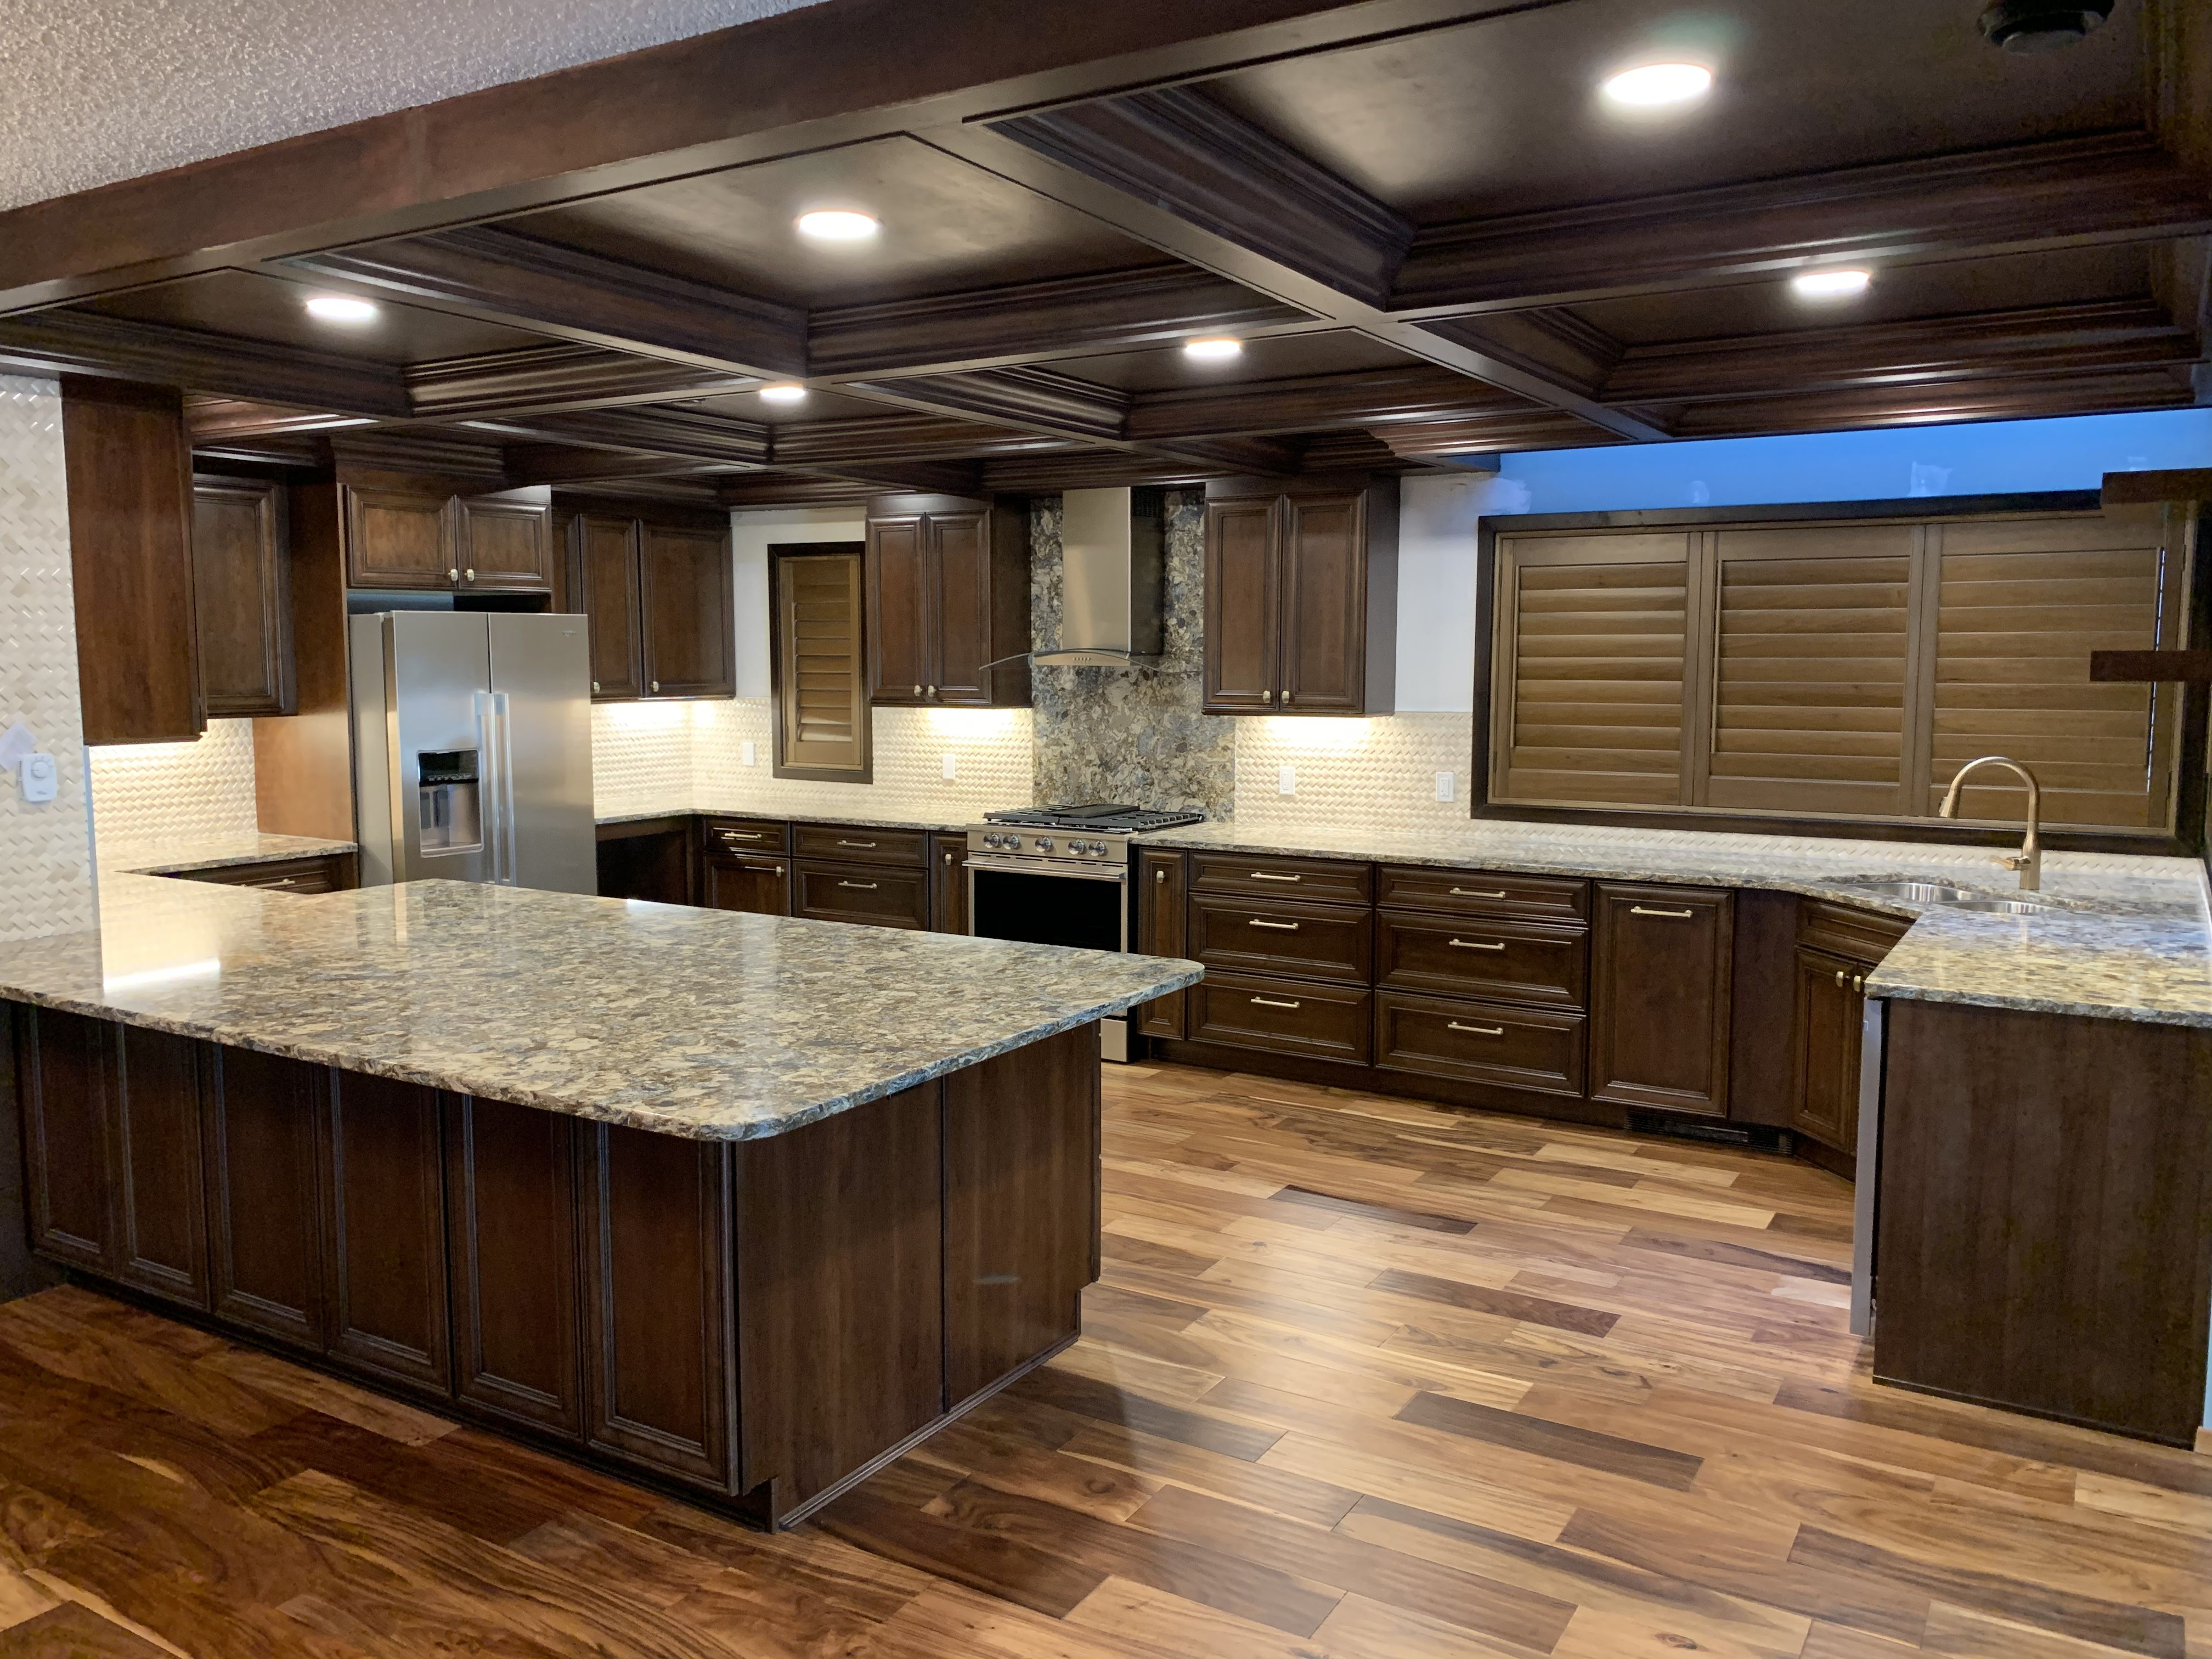 This Elegant Kitchen Designed By Vanessa From Homedepot In